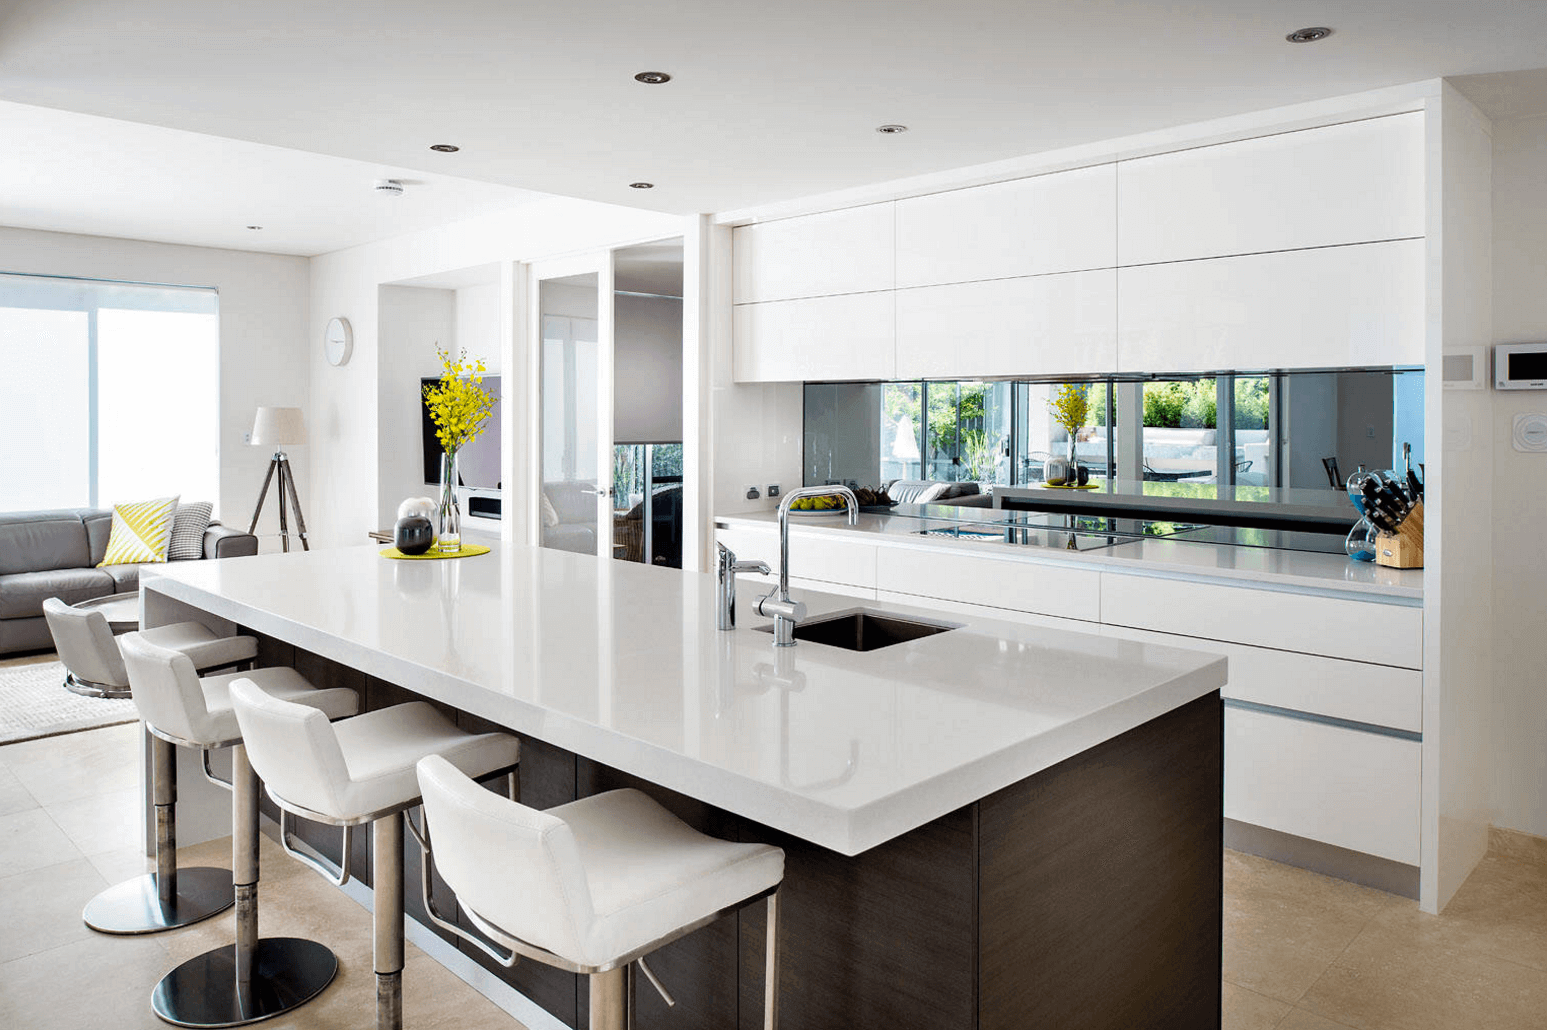 Mirror backsplash in white kitchen with white counter top island and plant